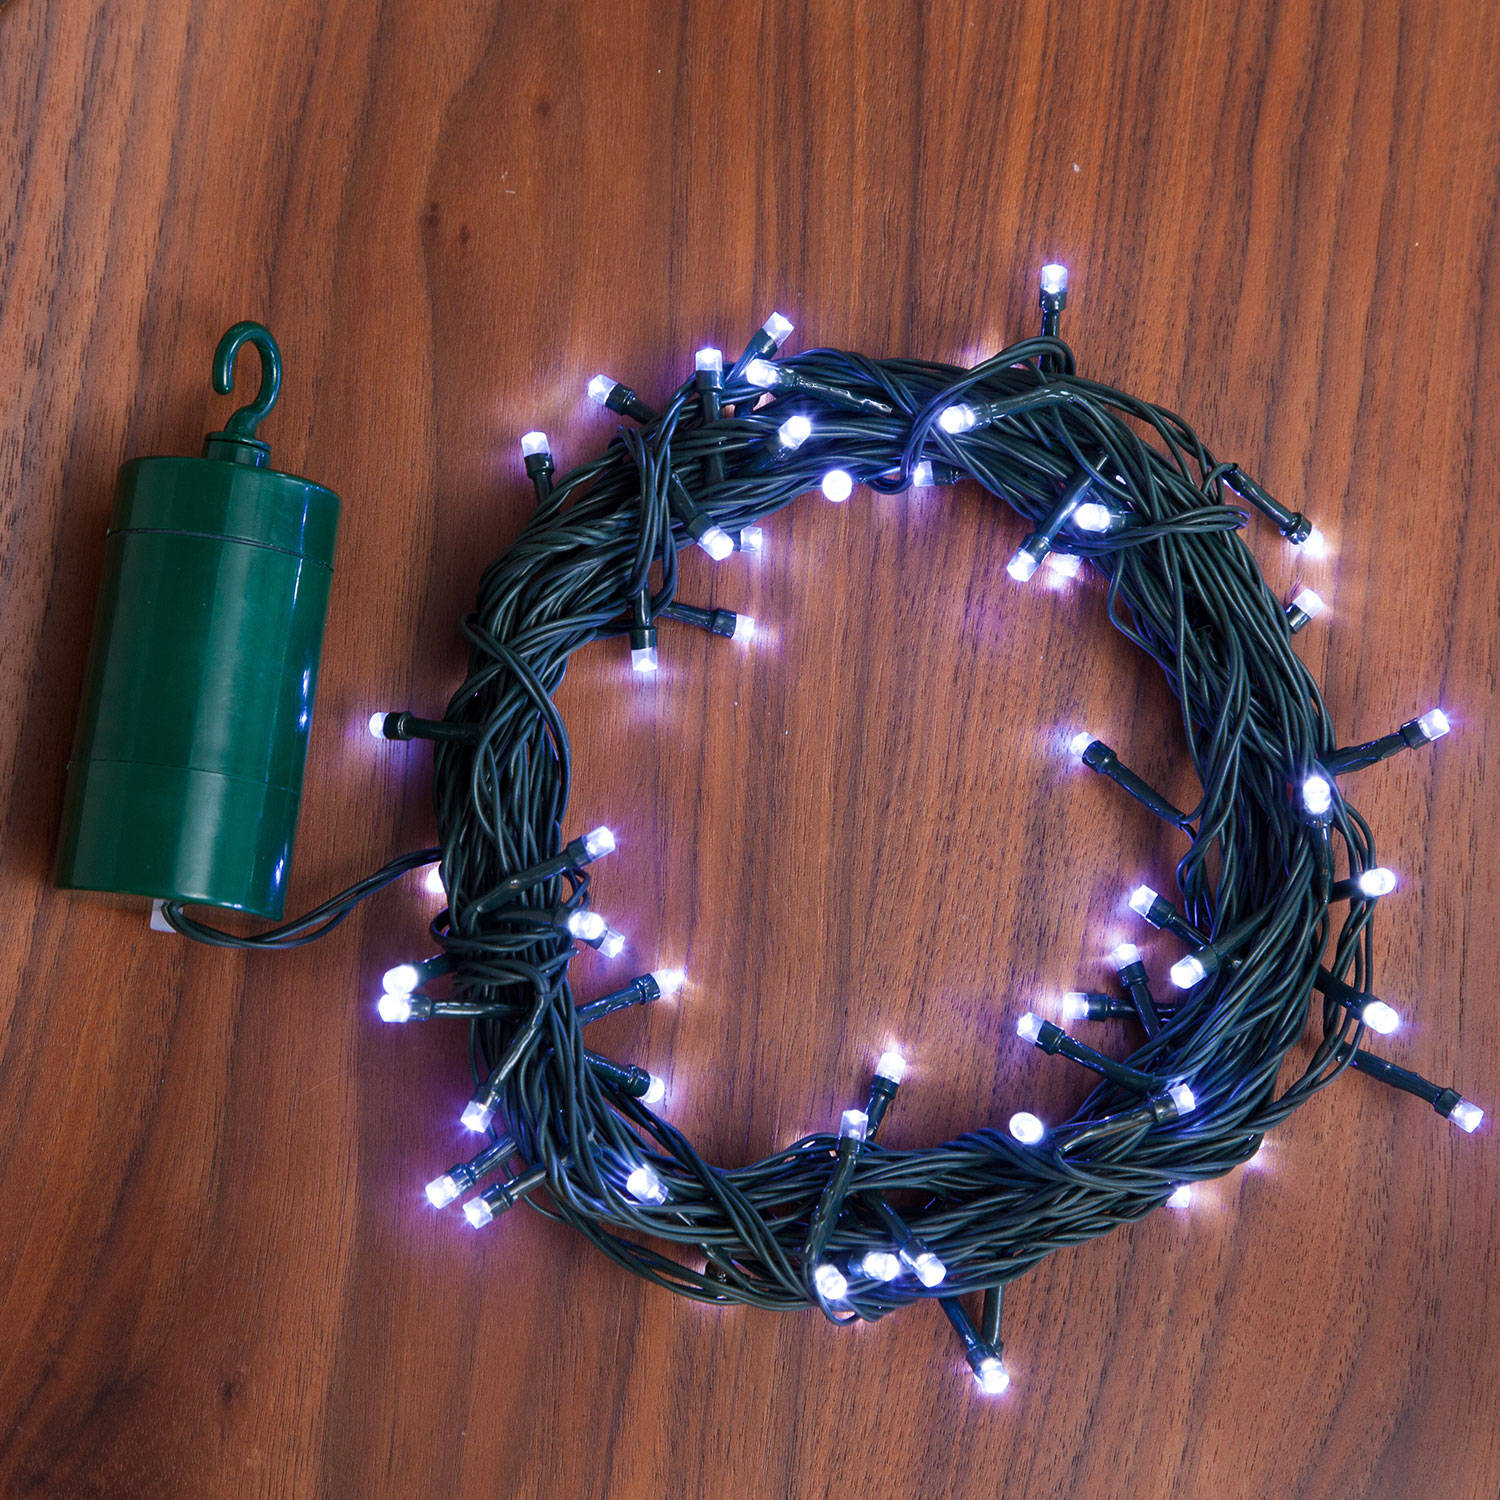 Led String Lights With Battery : Lights.com String Lights Christmas Lights Cool White 64 LED Battery String Lights with Timer